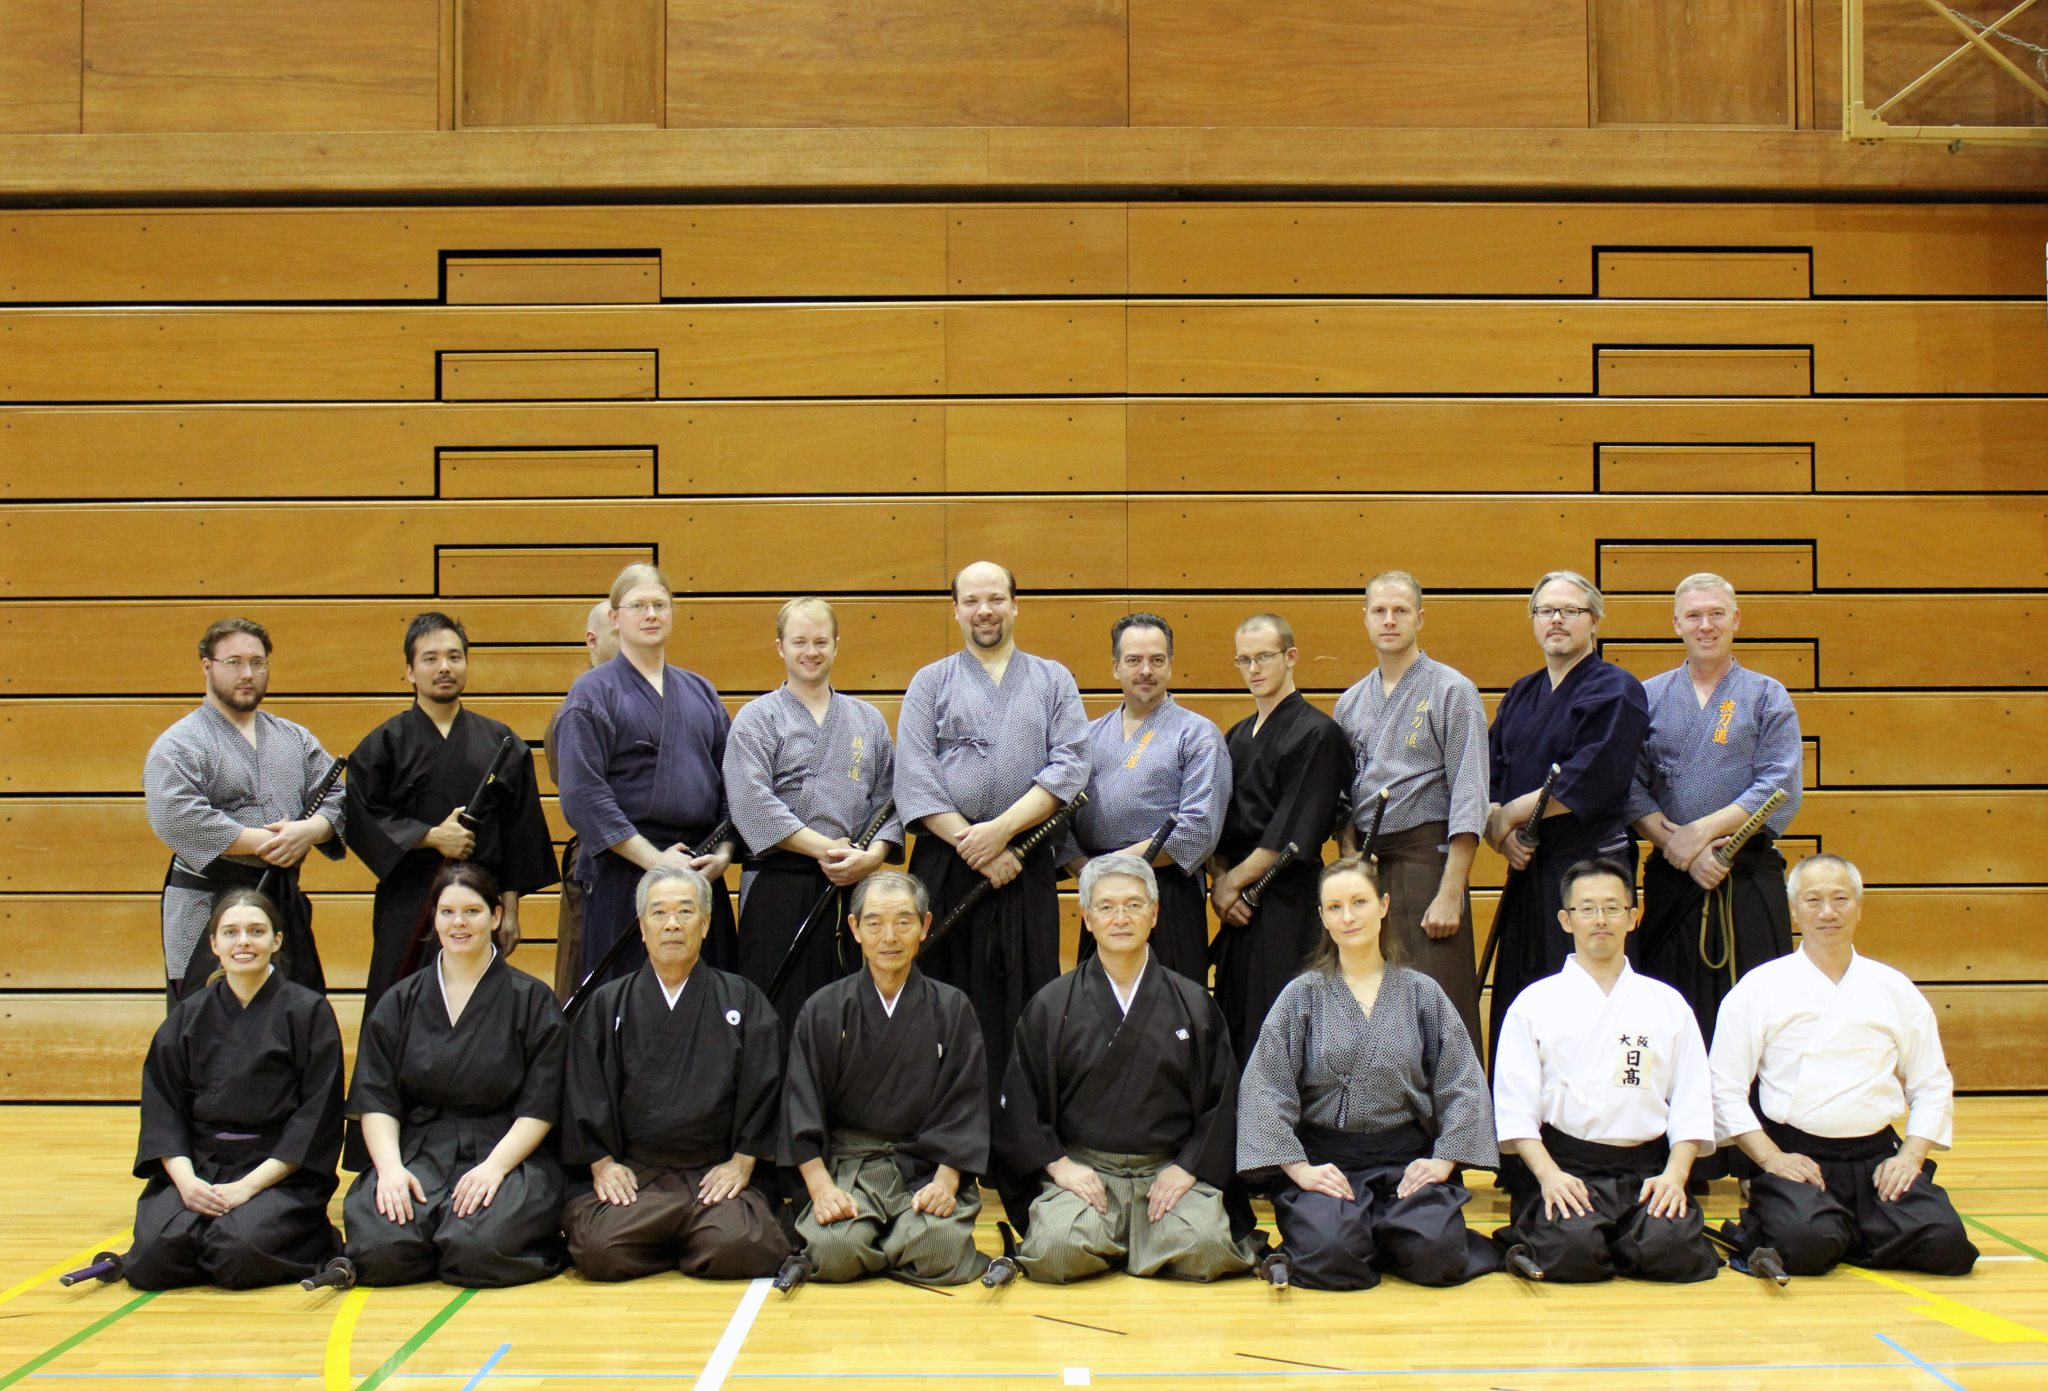 Pre-taikai training group photo.